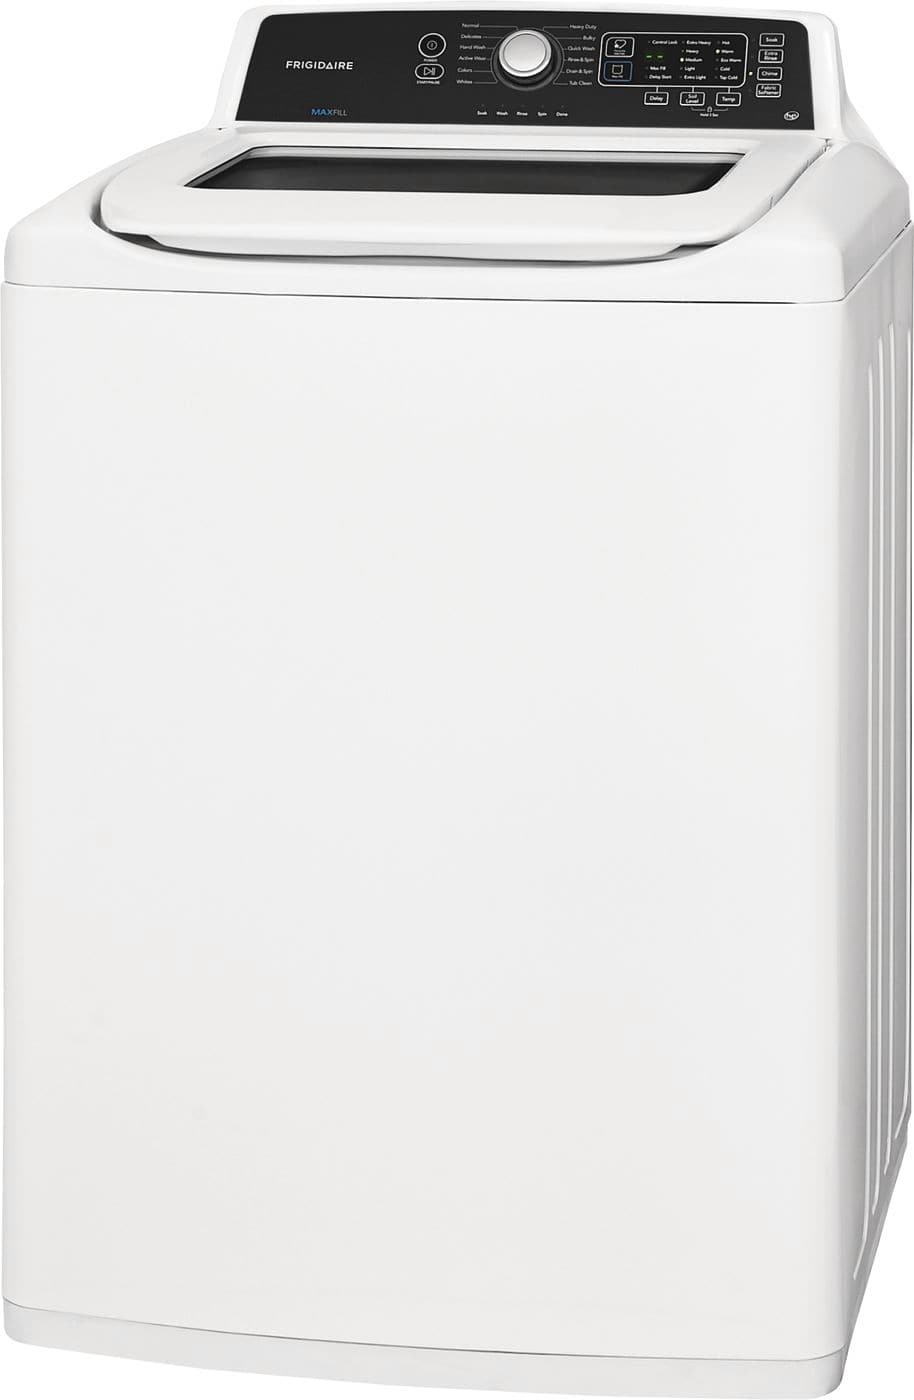 Model: FFTW4120SW | 4.1 Cu. Ft. High Efficiency Top Load Washer